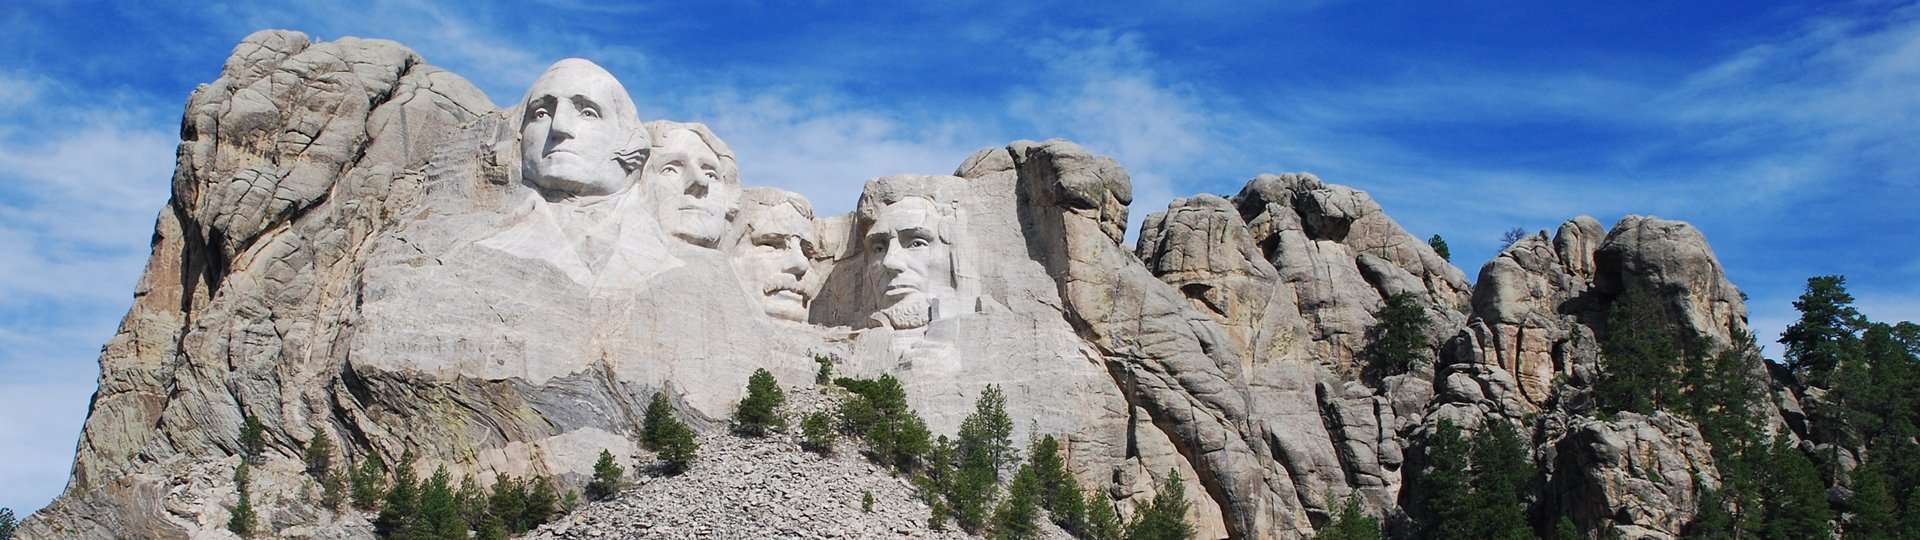 The giant carvings of four American presidents at Mount Rushmore, South Dakota.